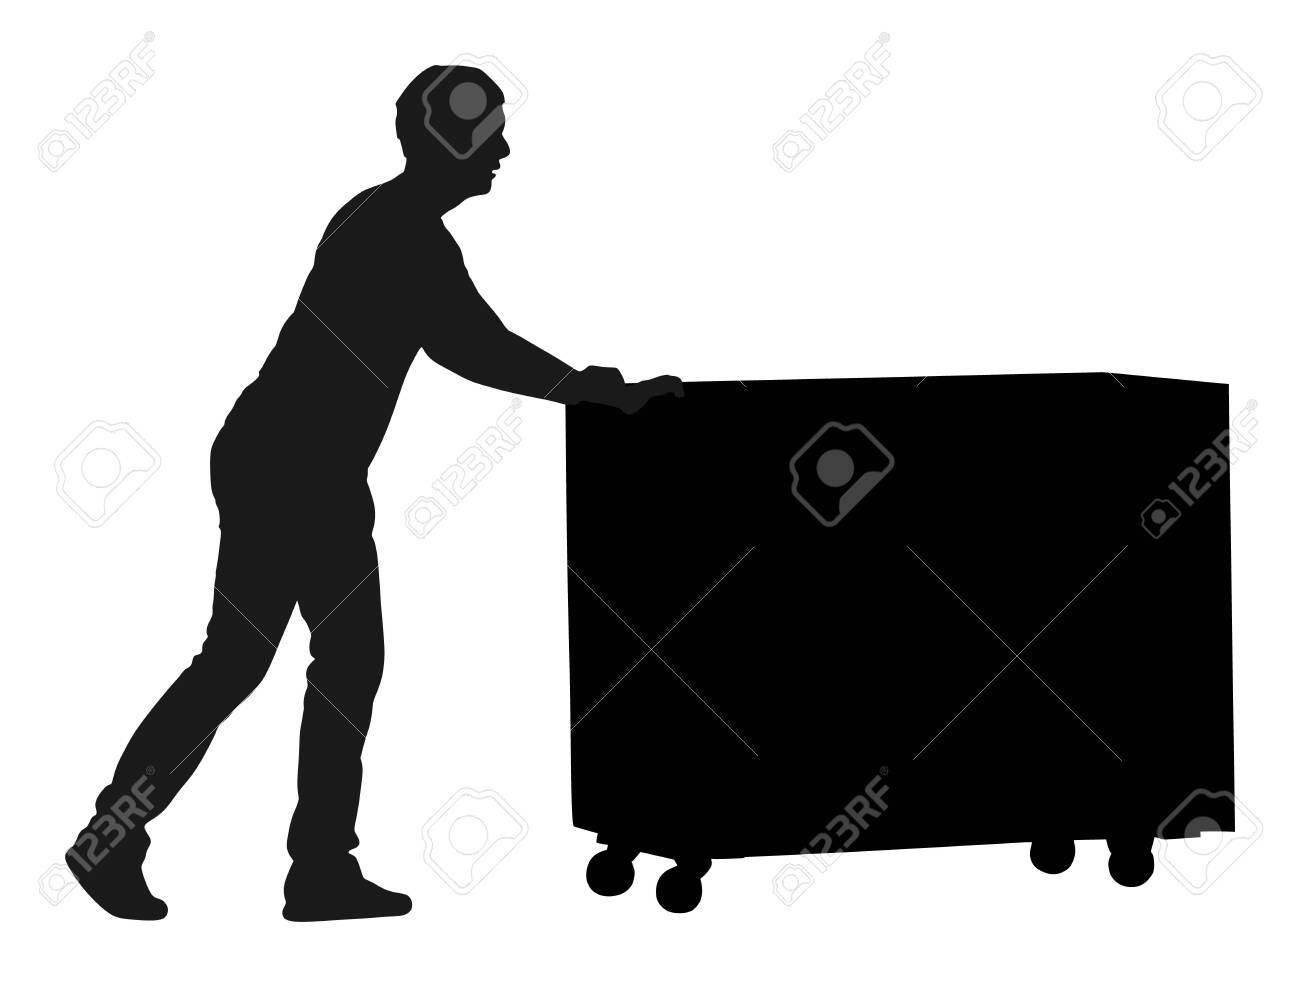 Hard worker pushing wheelbarrow and carry big box vector silhouette illustration isolated on white background. Delivery man moving package by cart. Service moving transport. Warehouse job activity. - 129236981